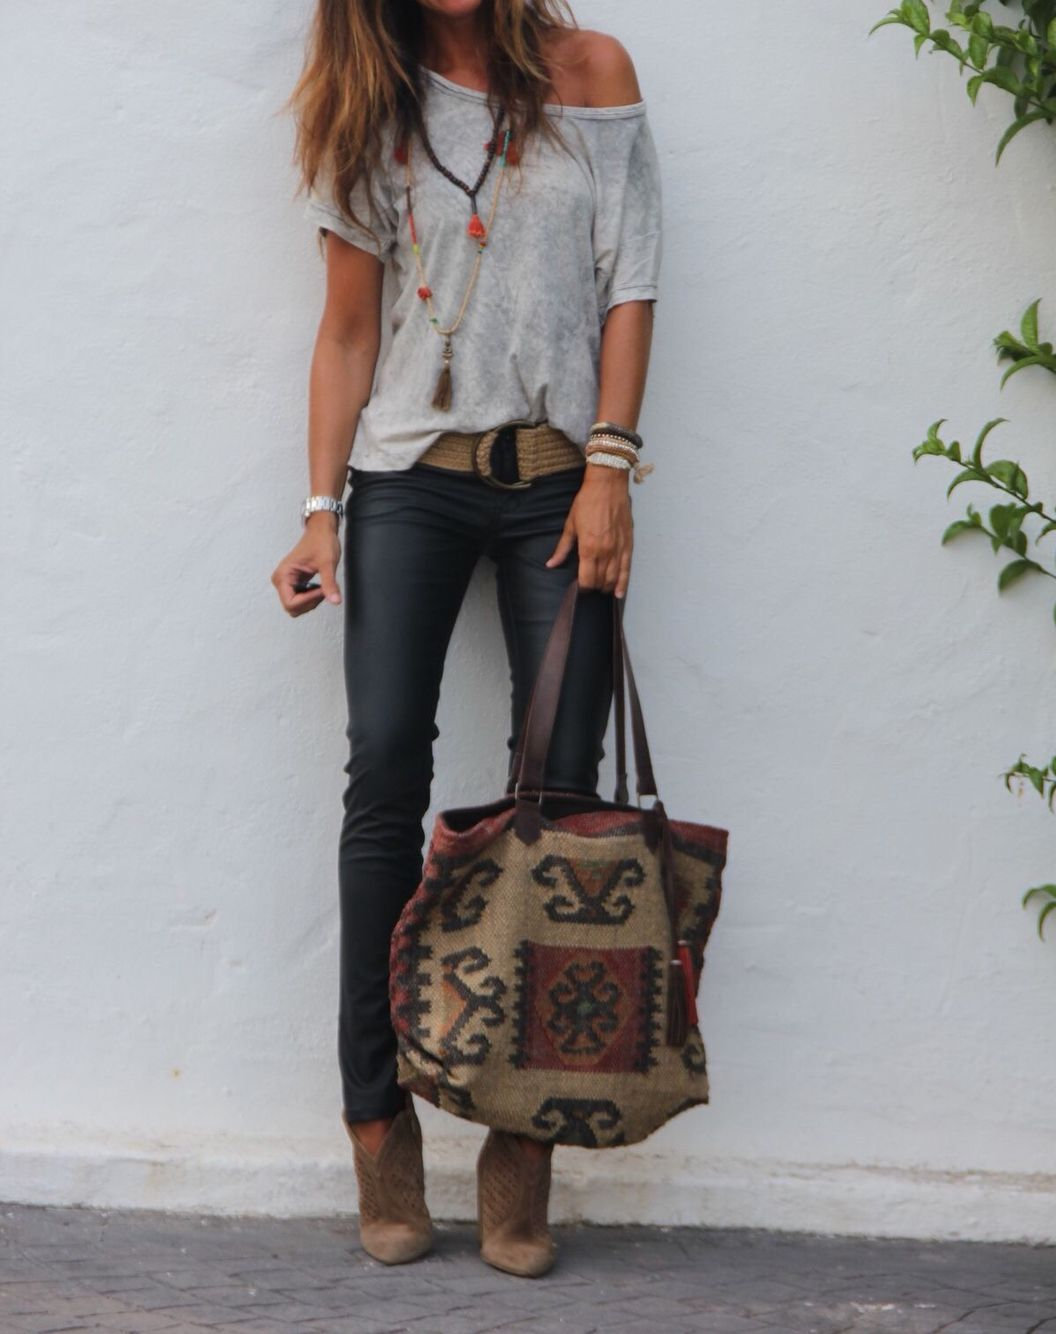 Wish I could pull this one off (well except the bag)! Feels pretty rock n roll to me!